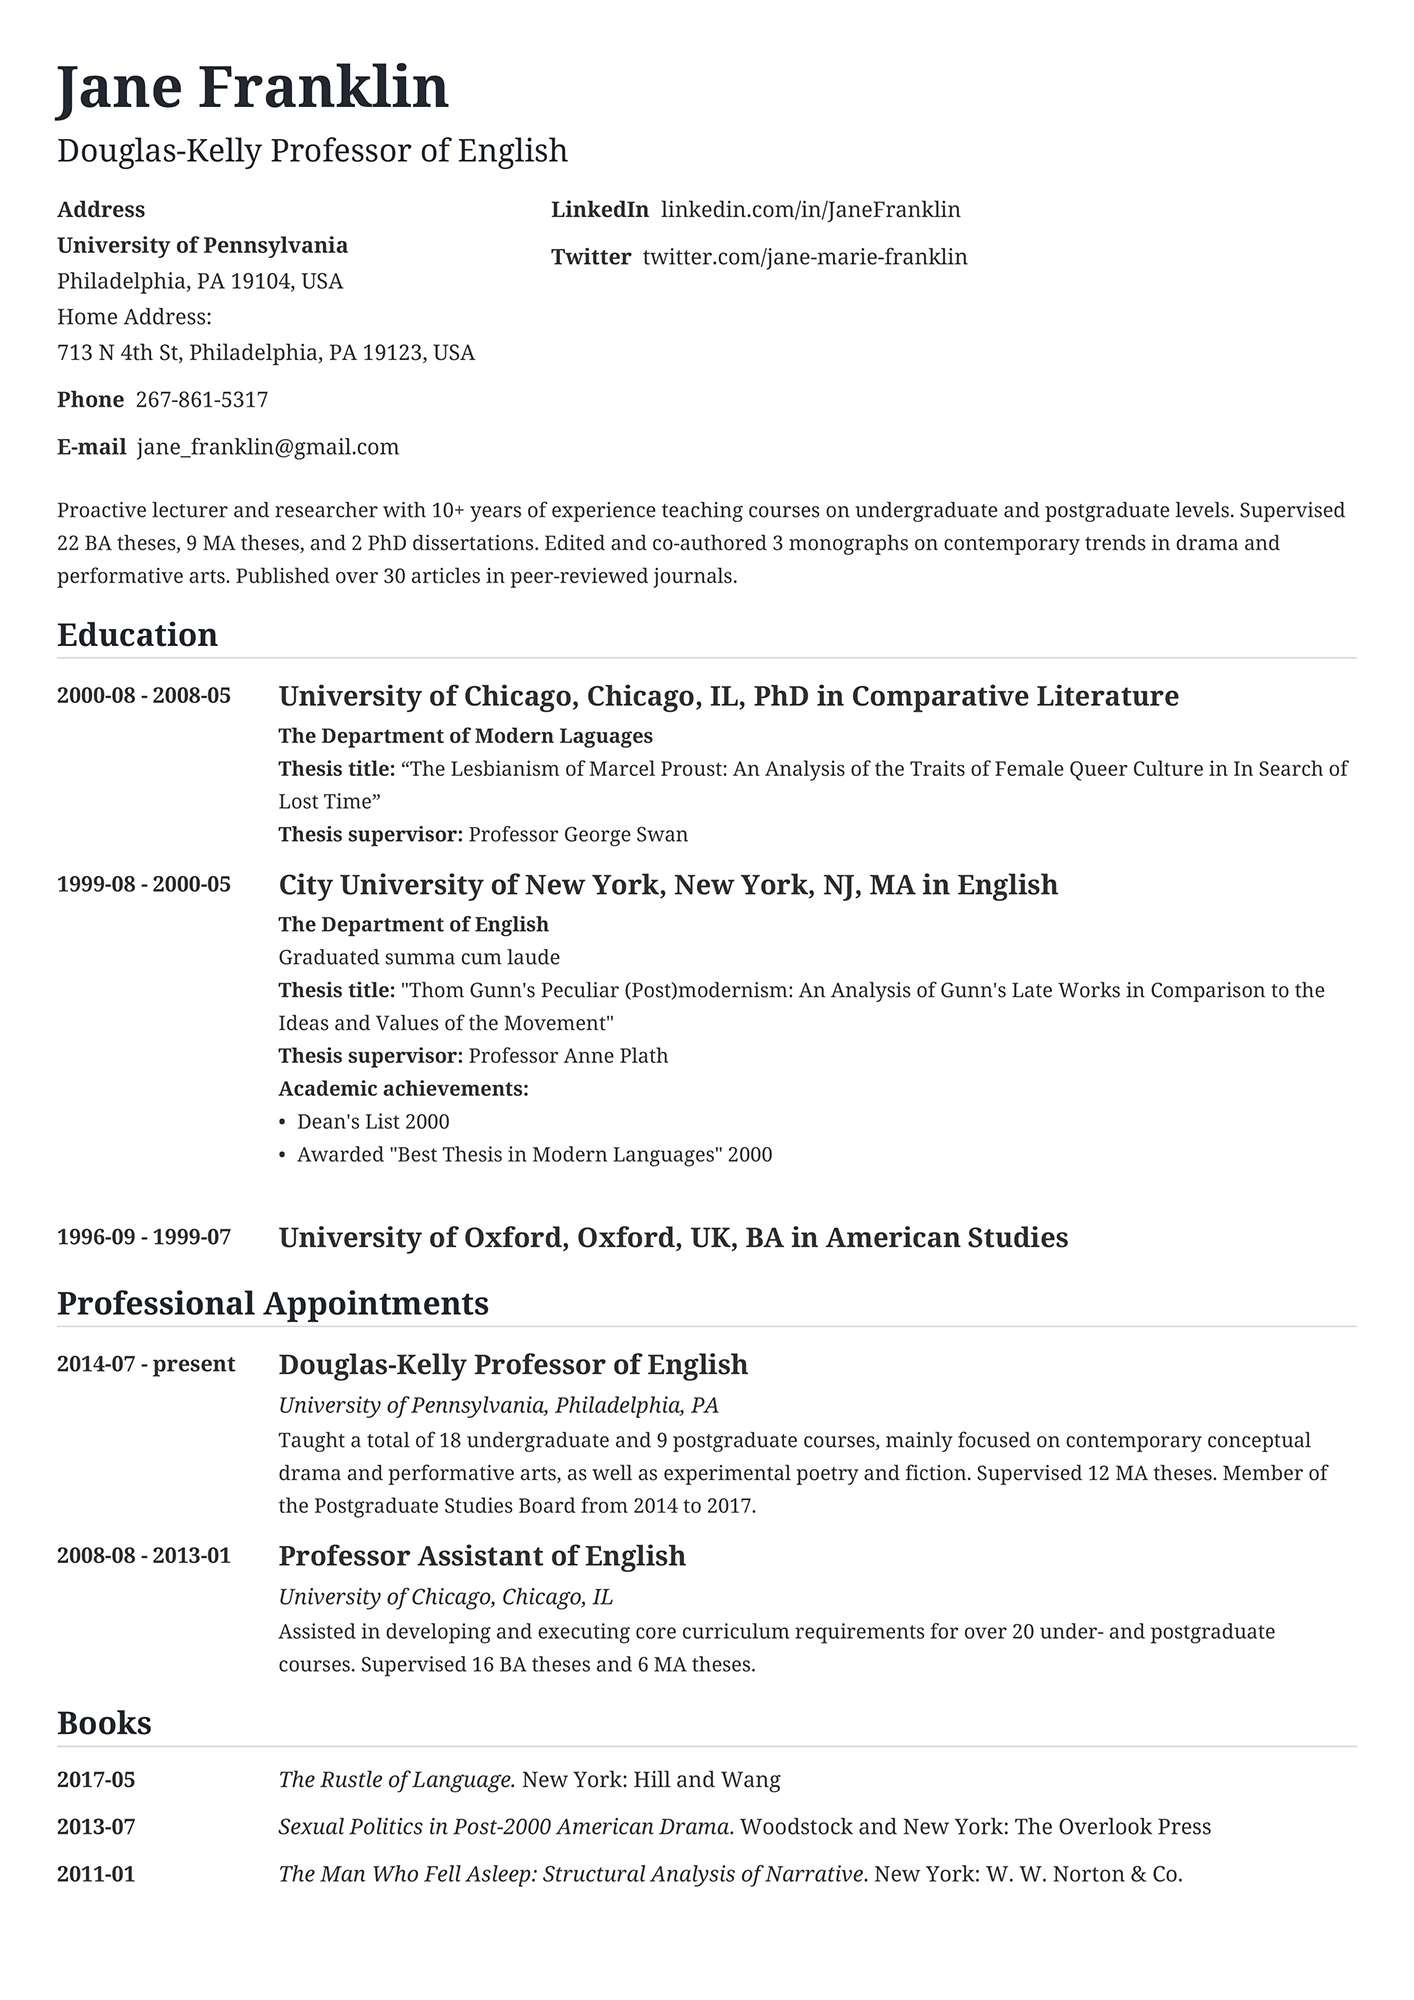 Example of an professor CV